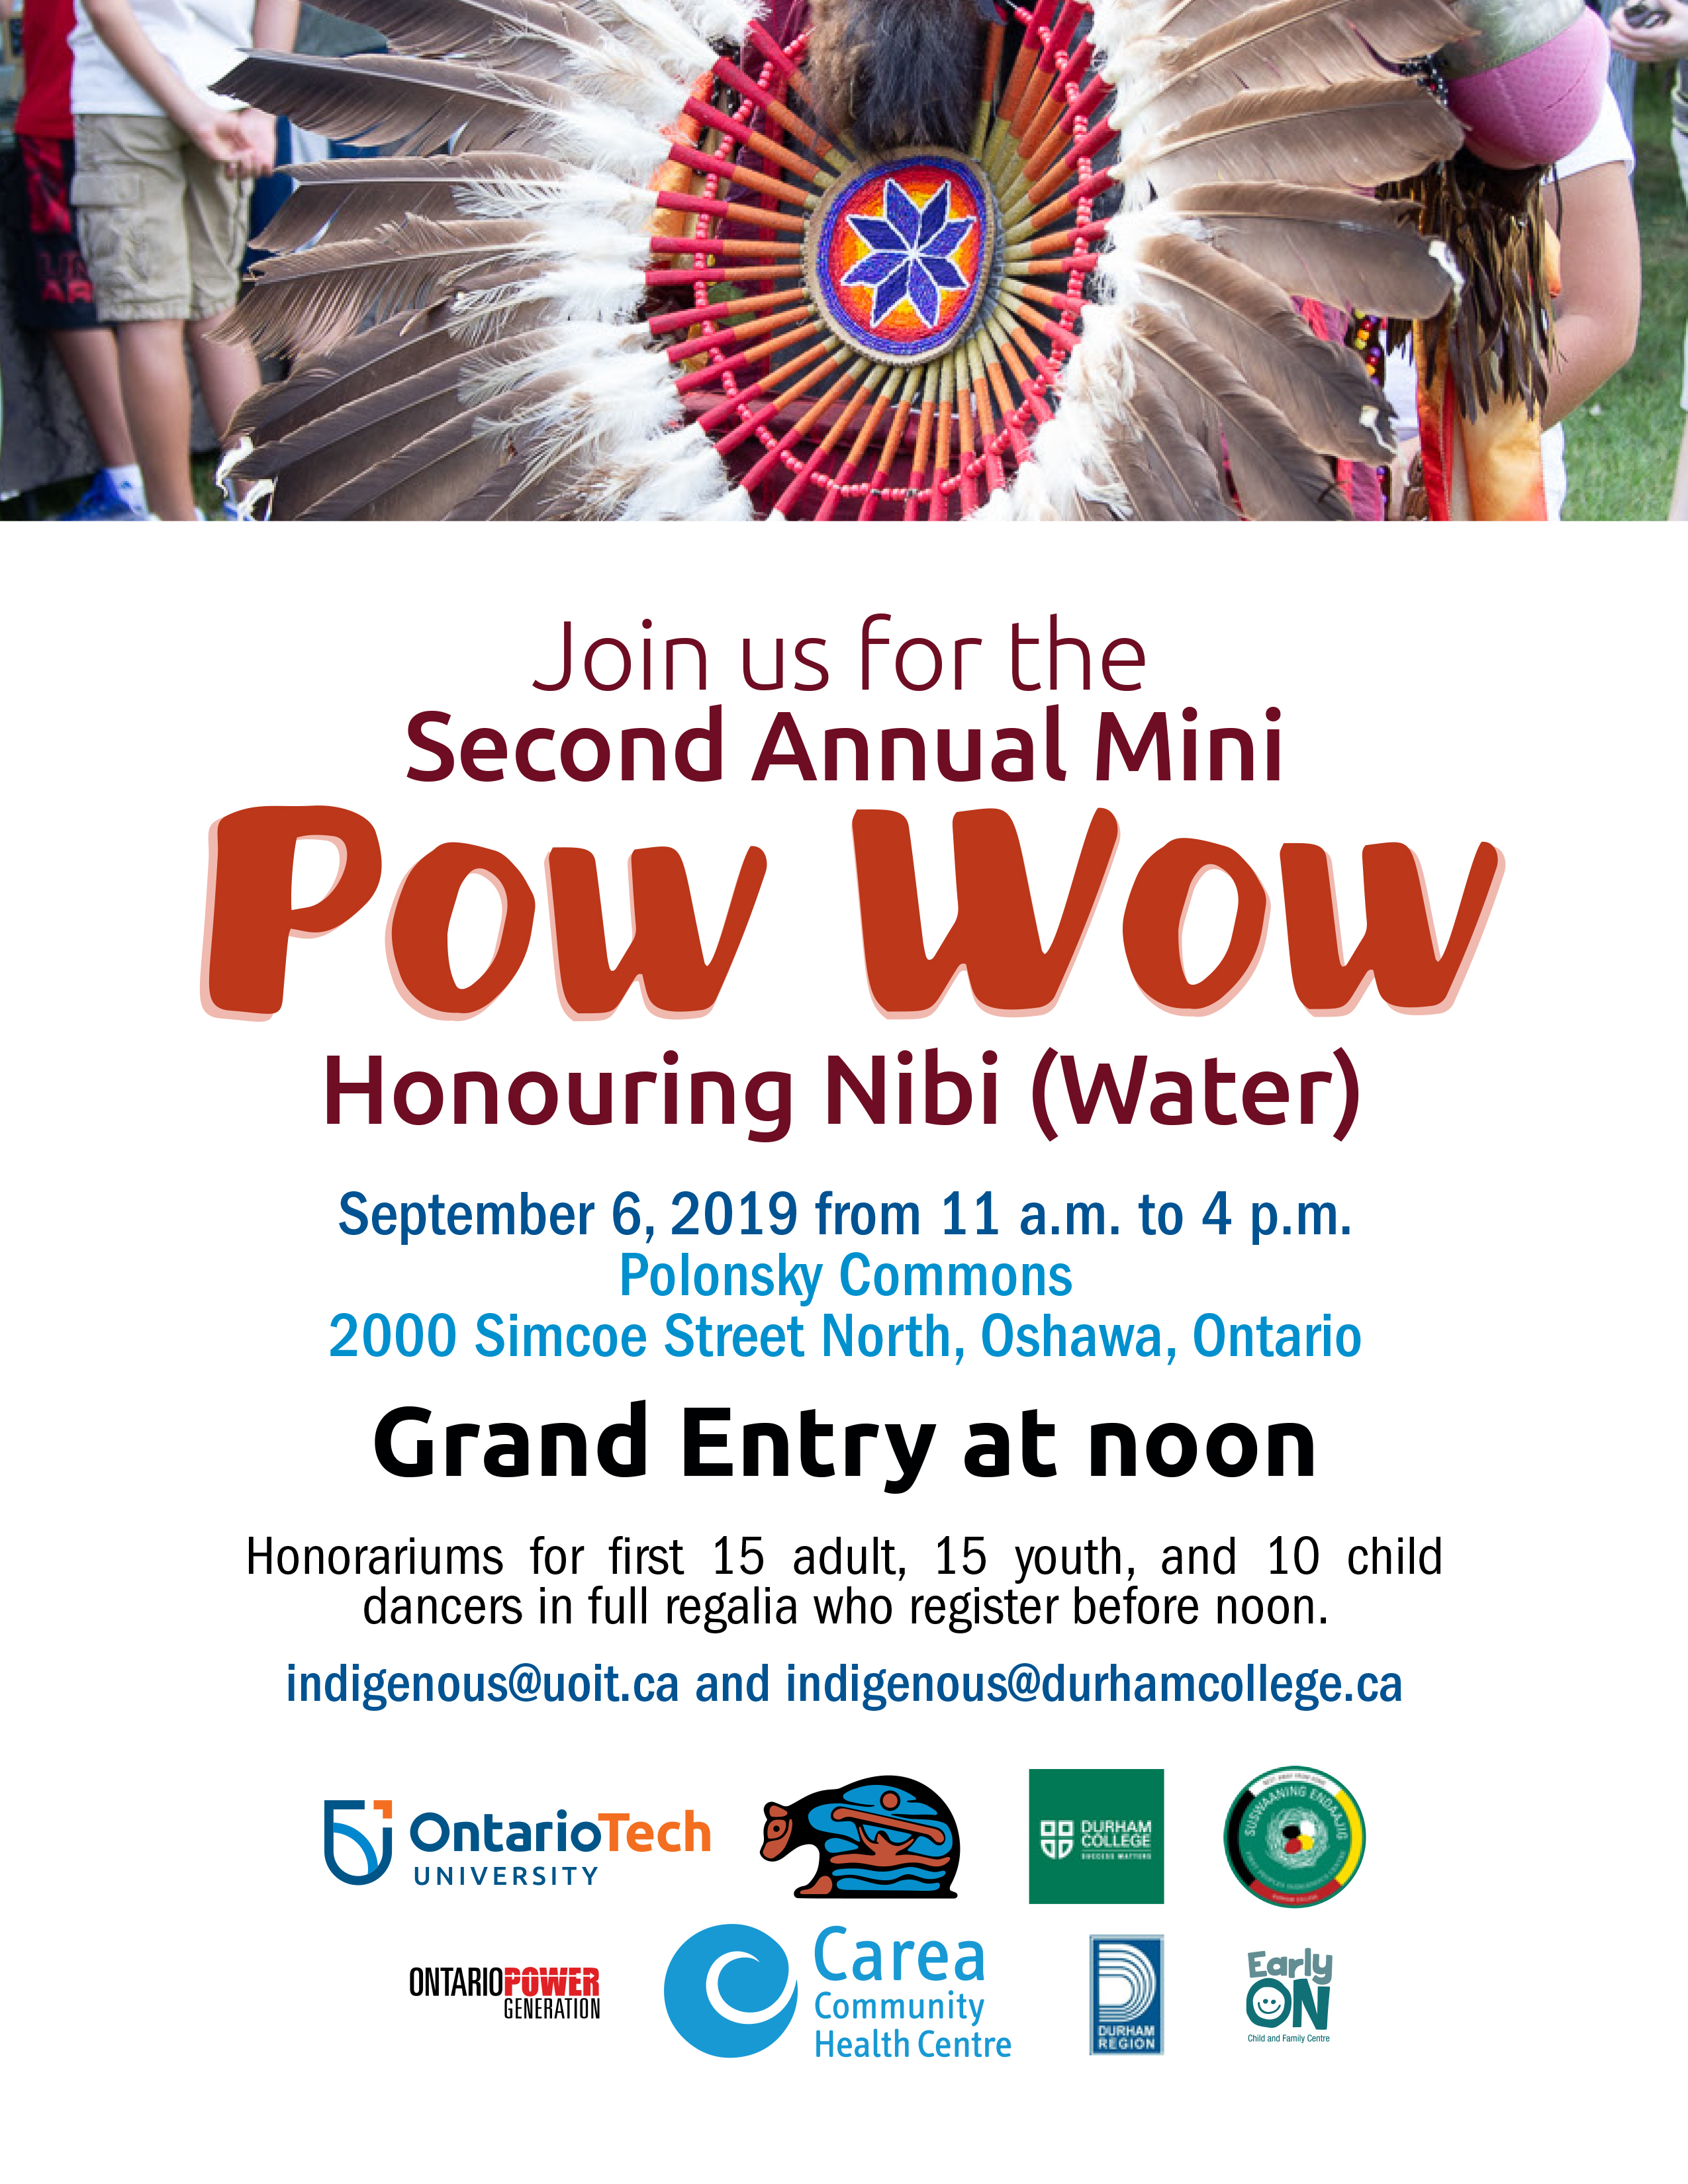 Poster promoting Pow Wow at Durham College UOIT